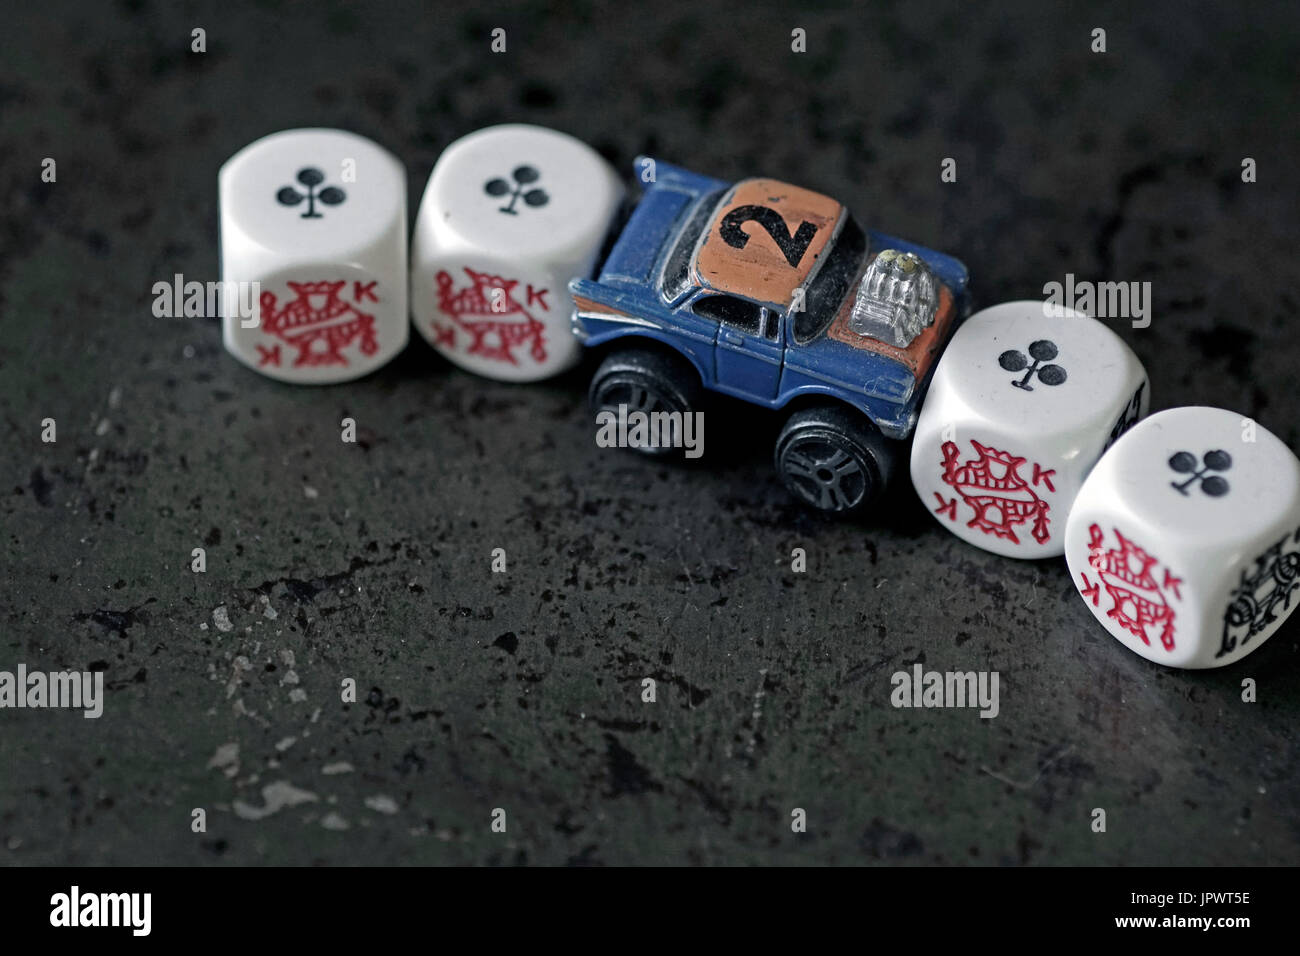 model car pushing dice out of frame - Stock Image